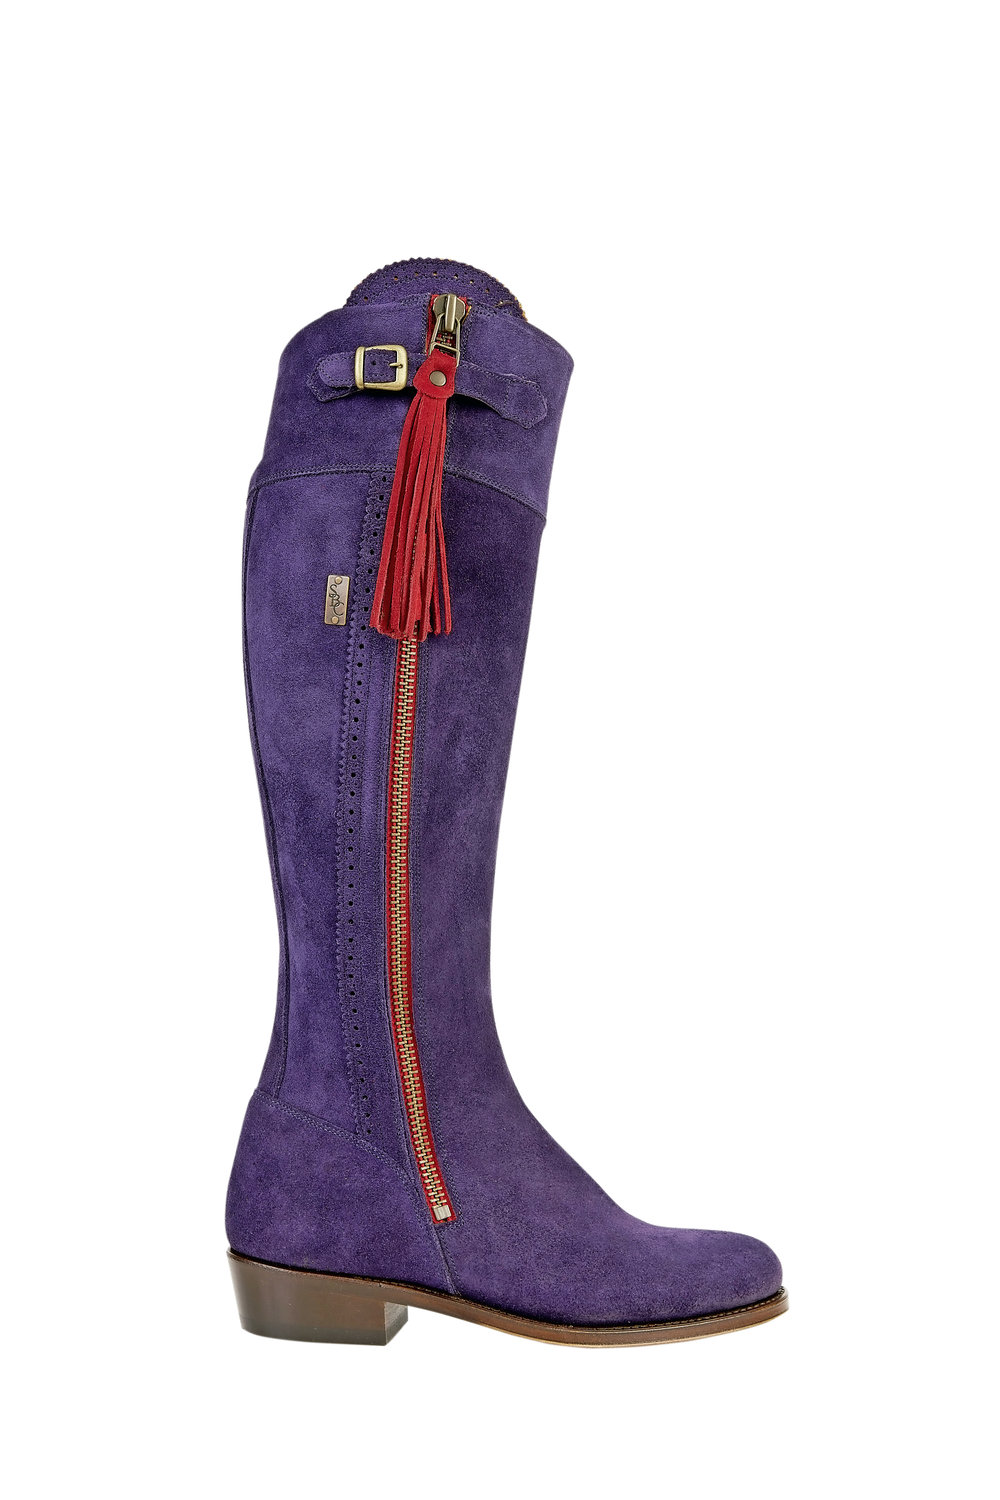 Win a pair of stunning boots from The Spanish Boot Company!